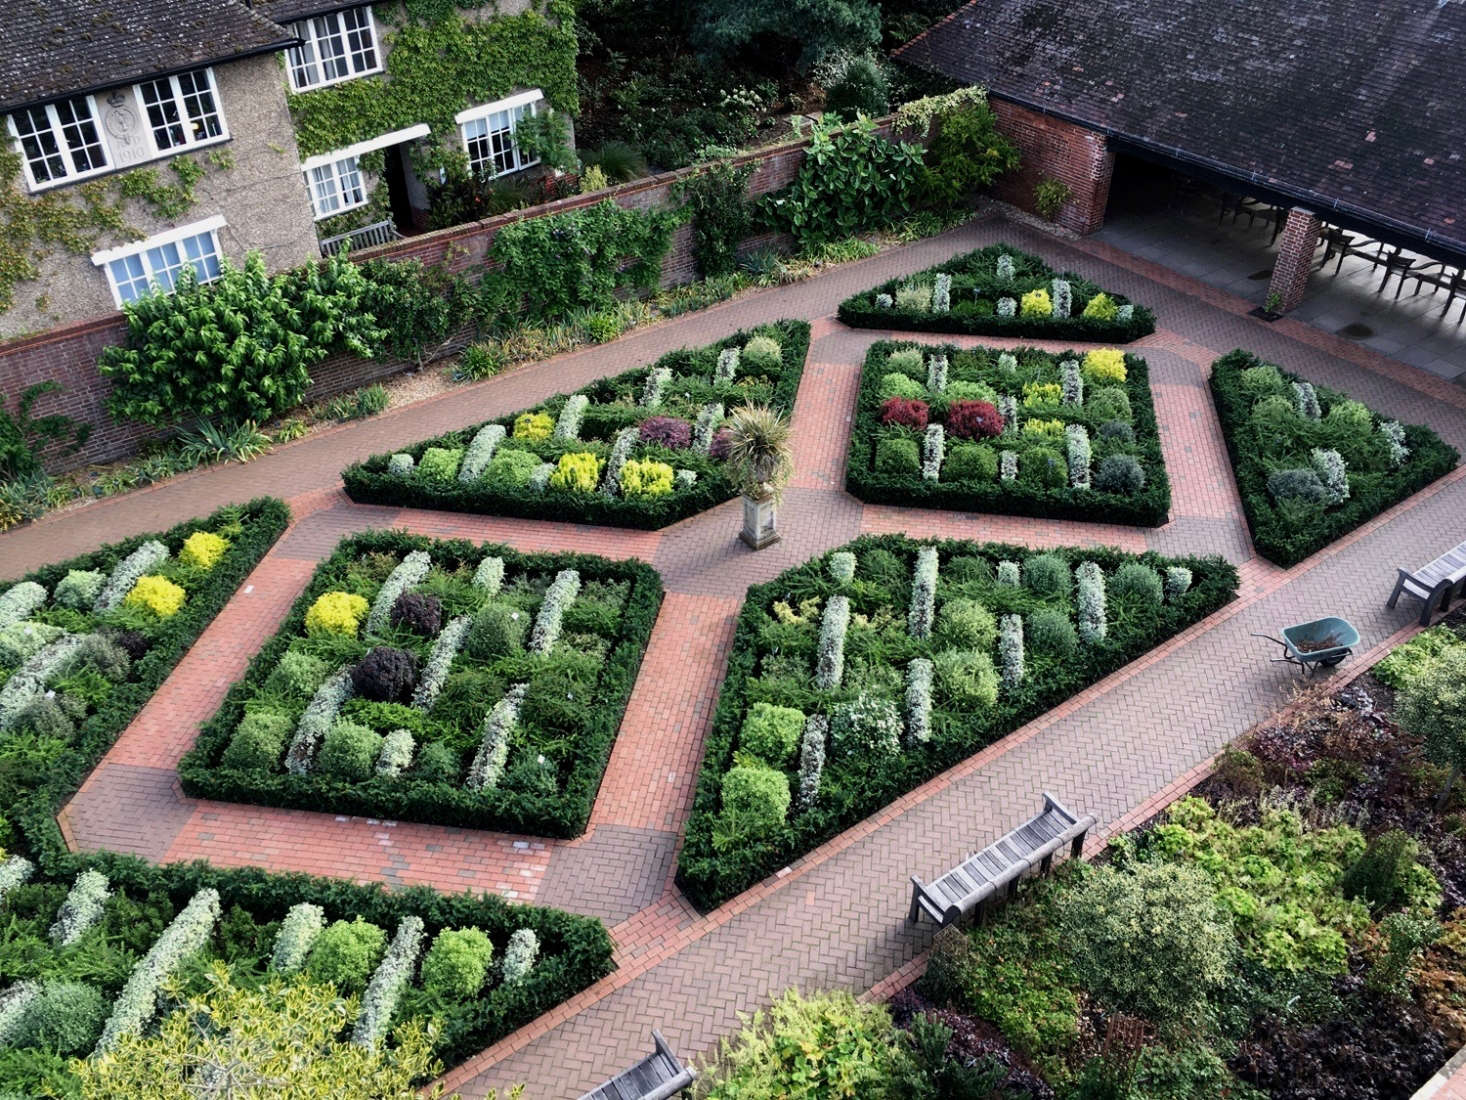 The trial garden shimmering in August. Photograph by Sean McDill courtesy of Royal Horticultural Society.